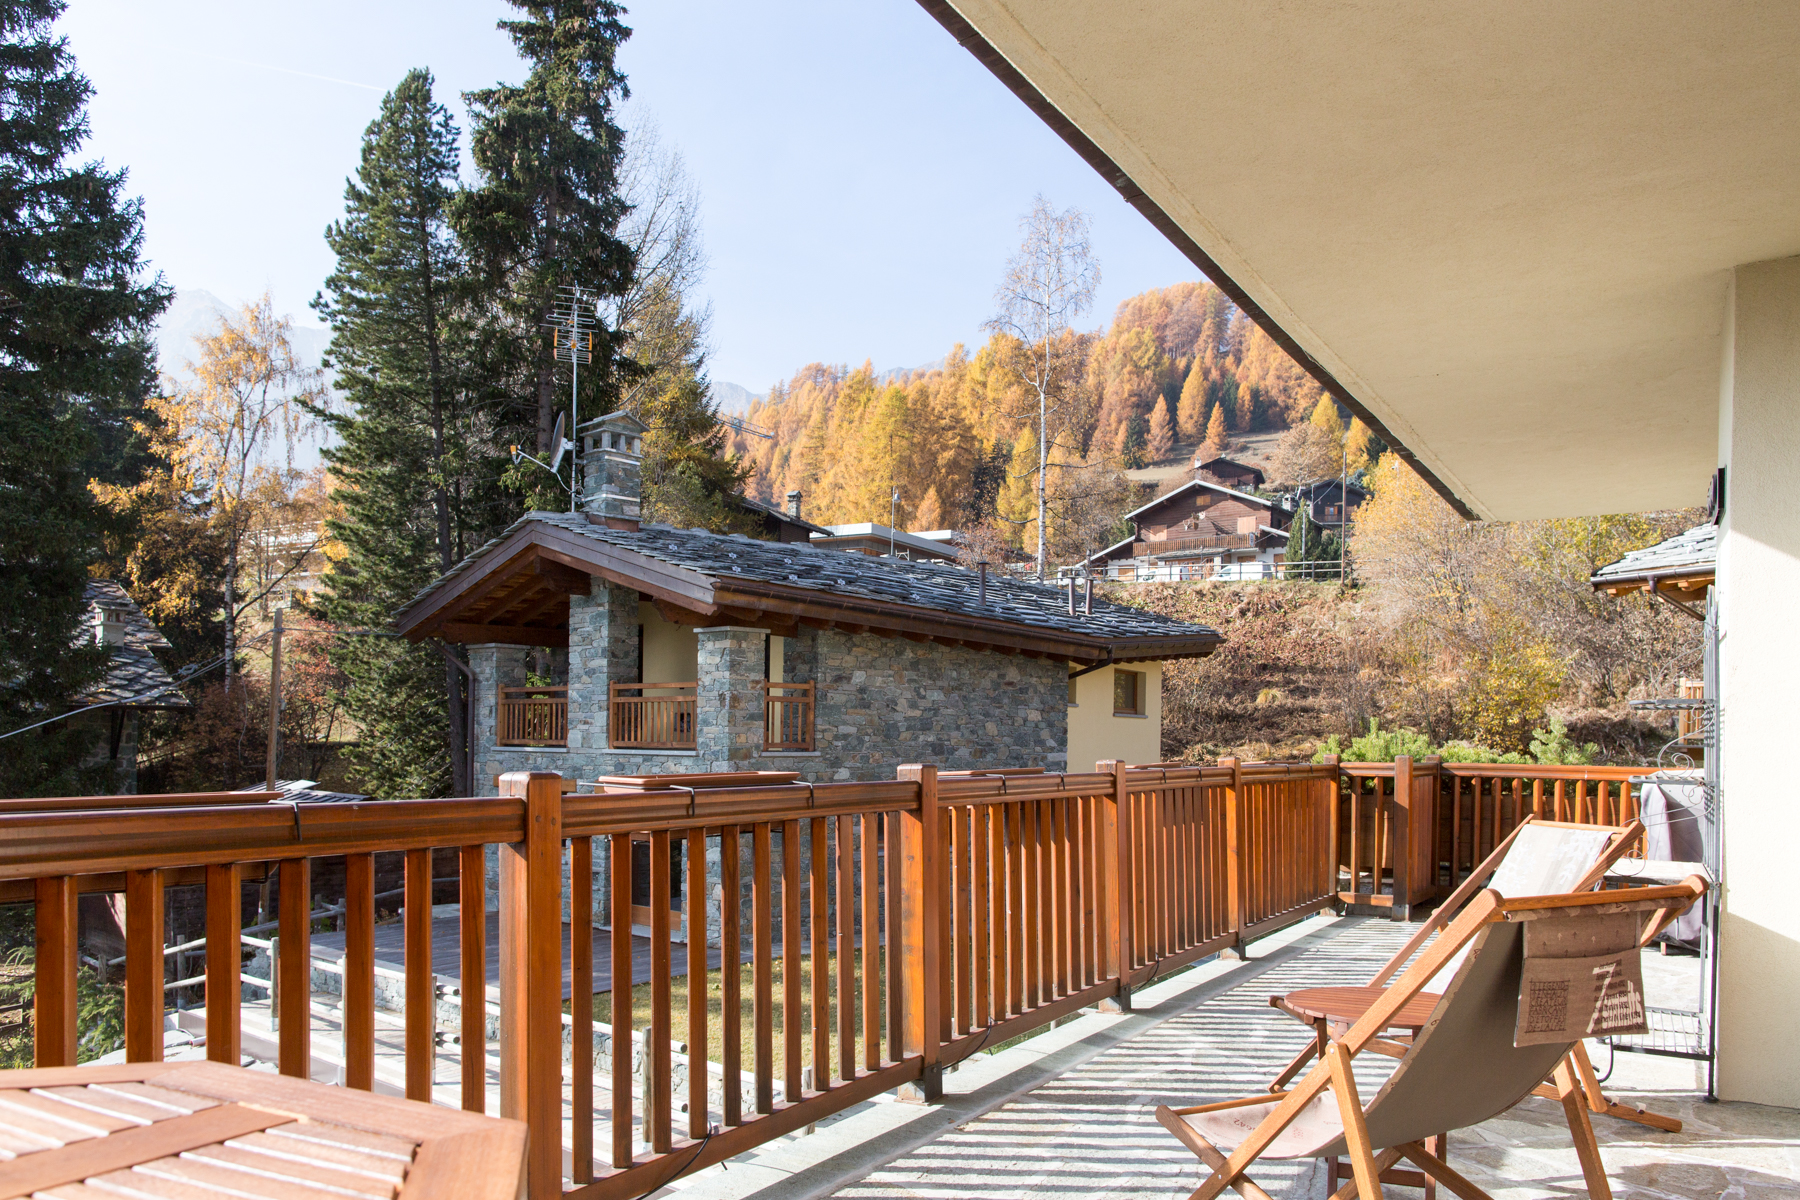 Additional photo for property listing at Cozy Apartment in Val d'Ayas Route Emile Chanoux Autres Aosta, Aosta 11020 Italie